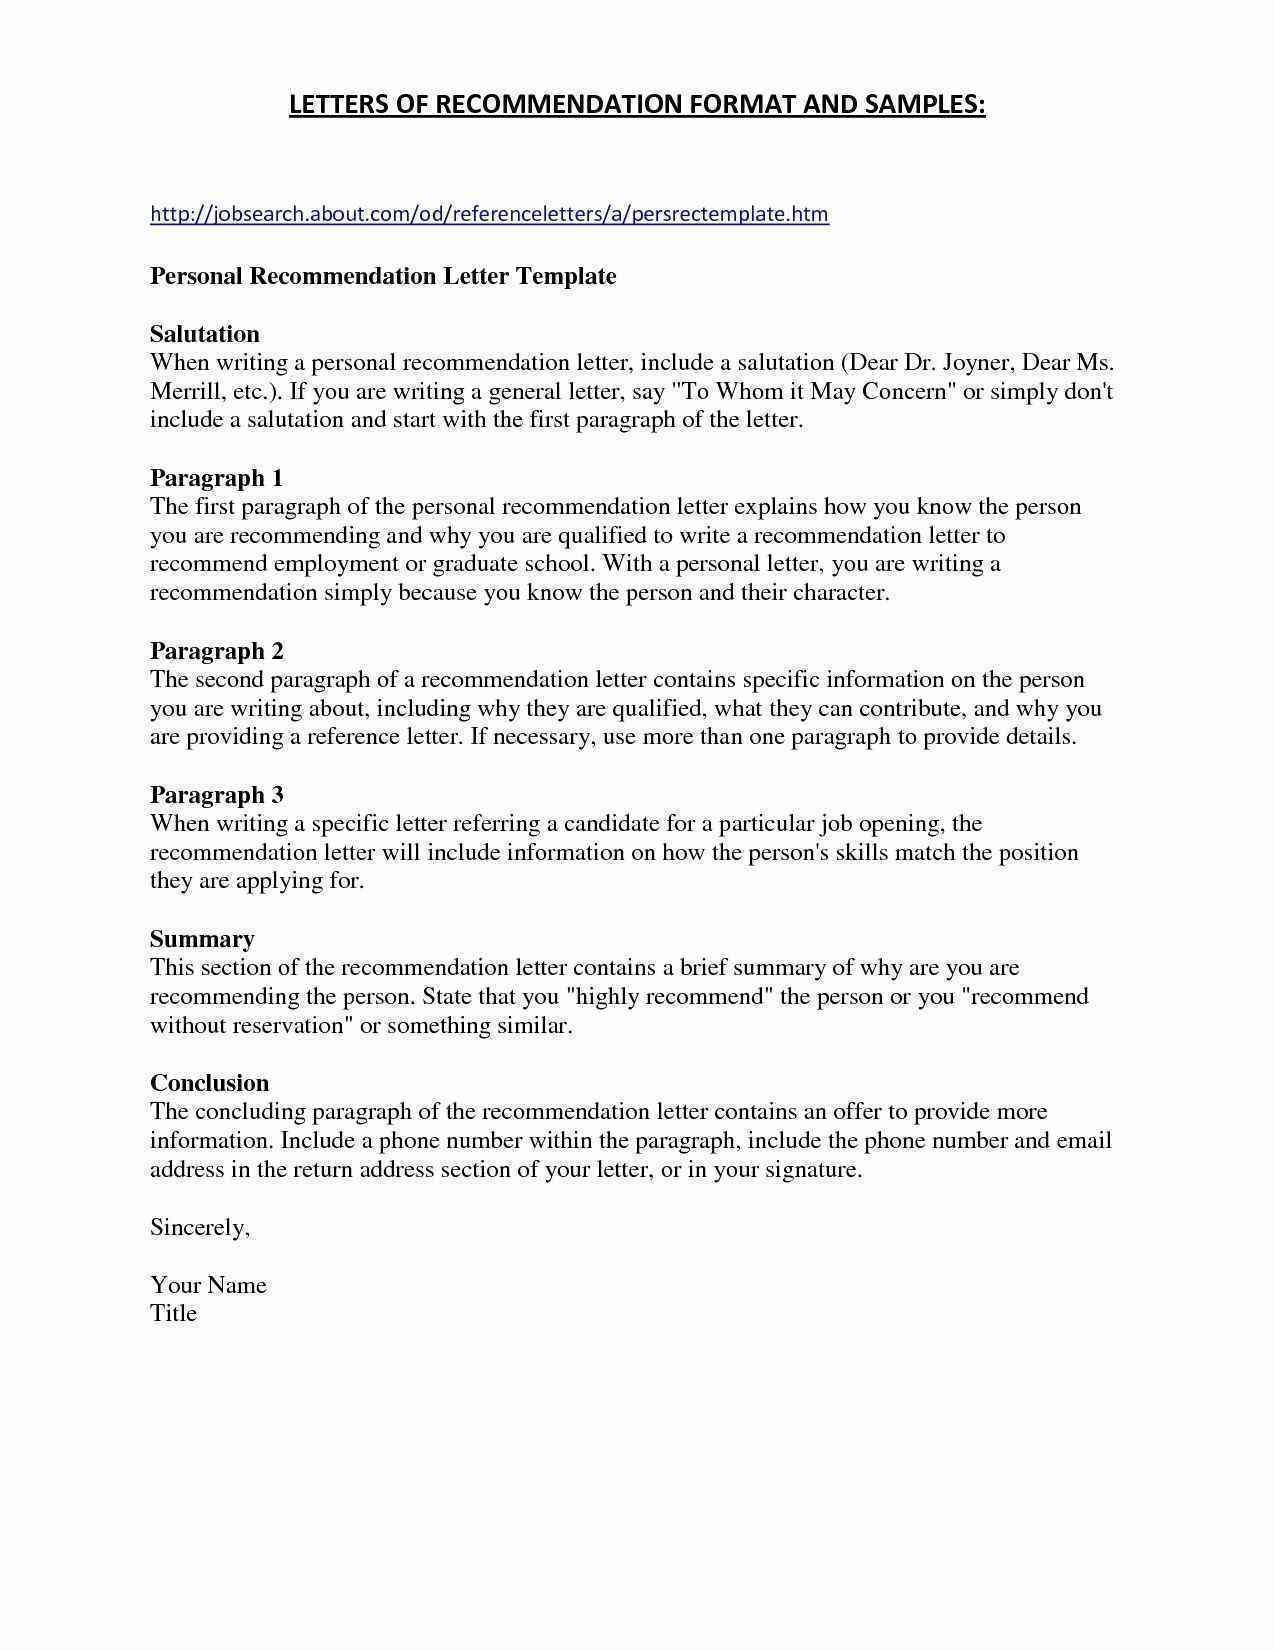 Bullet Points With Images Letter Templates Cover Letter For